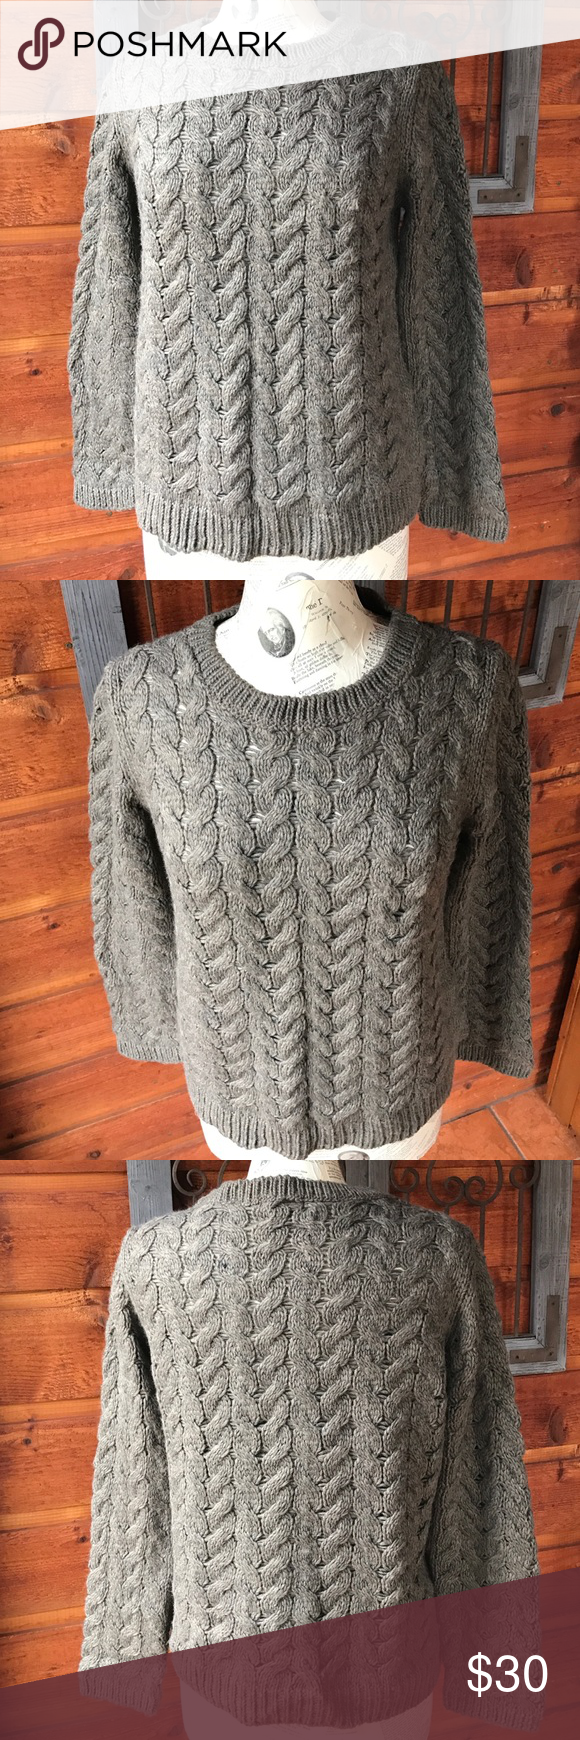 H&M gray cable knit sweater size large H and M gray cable knit ...